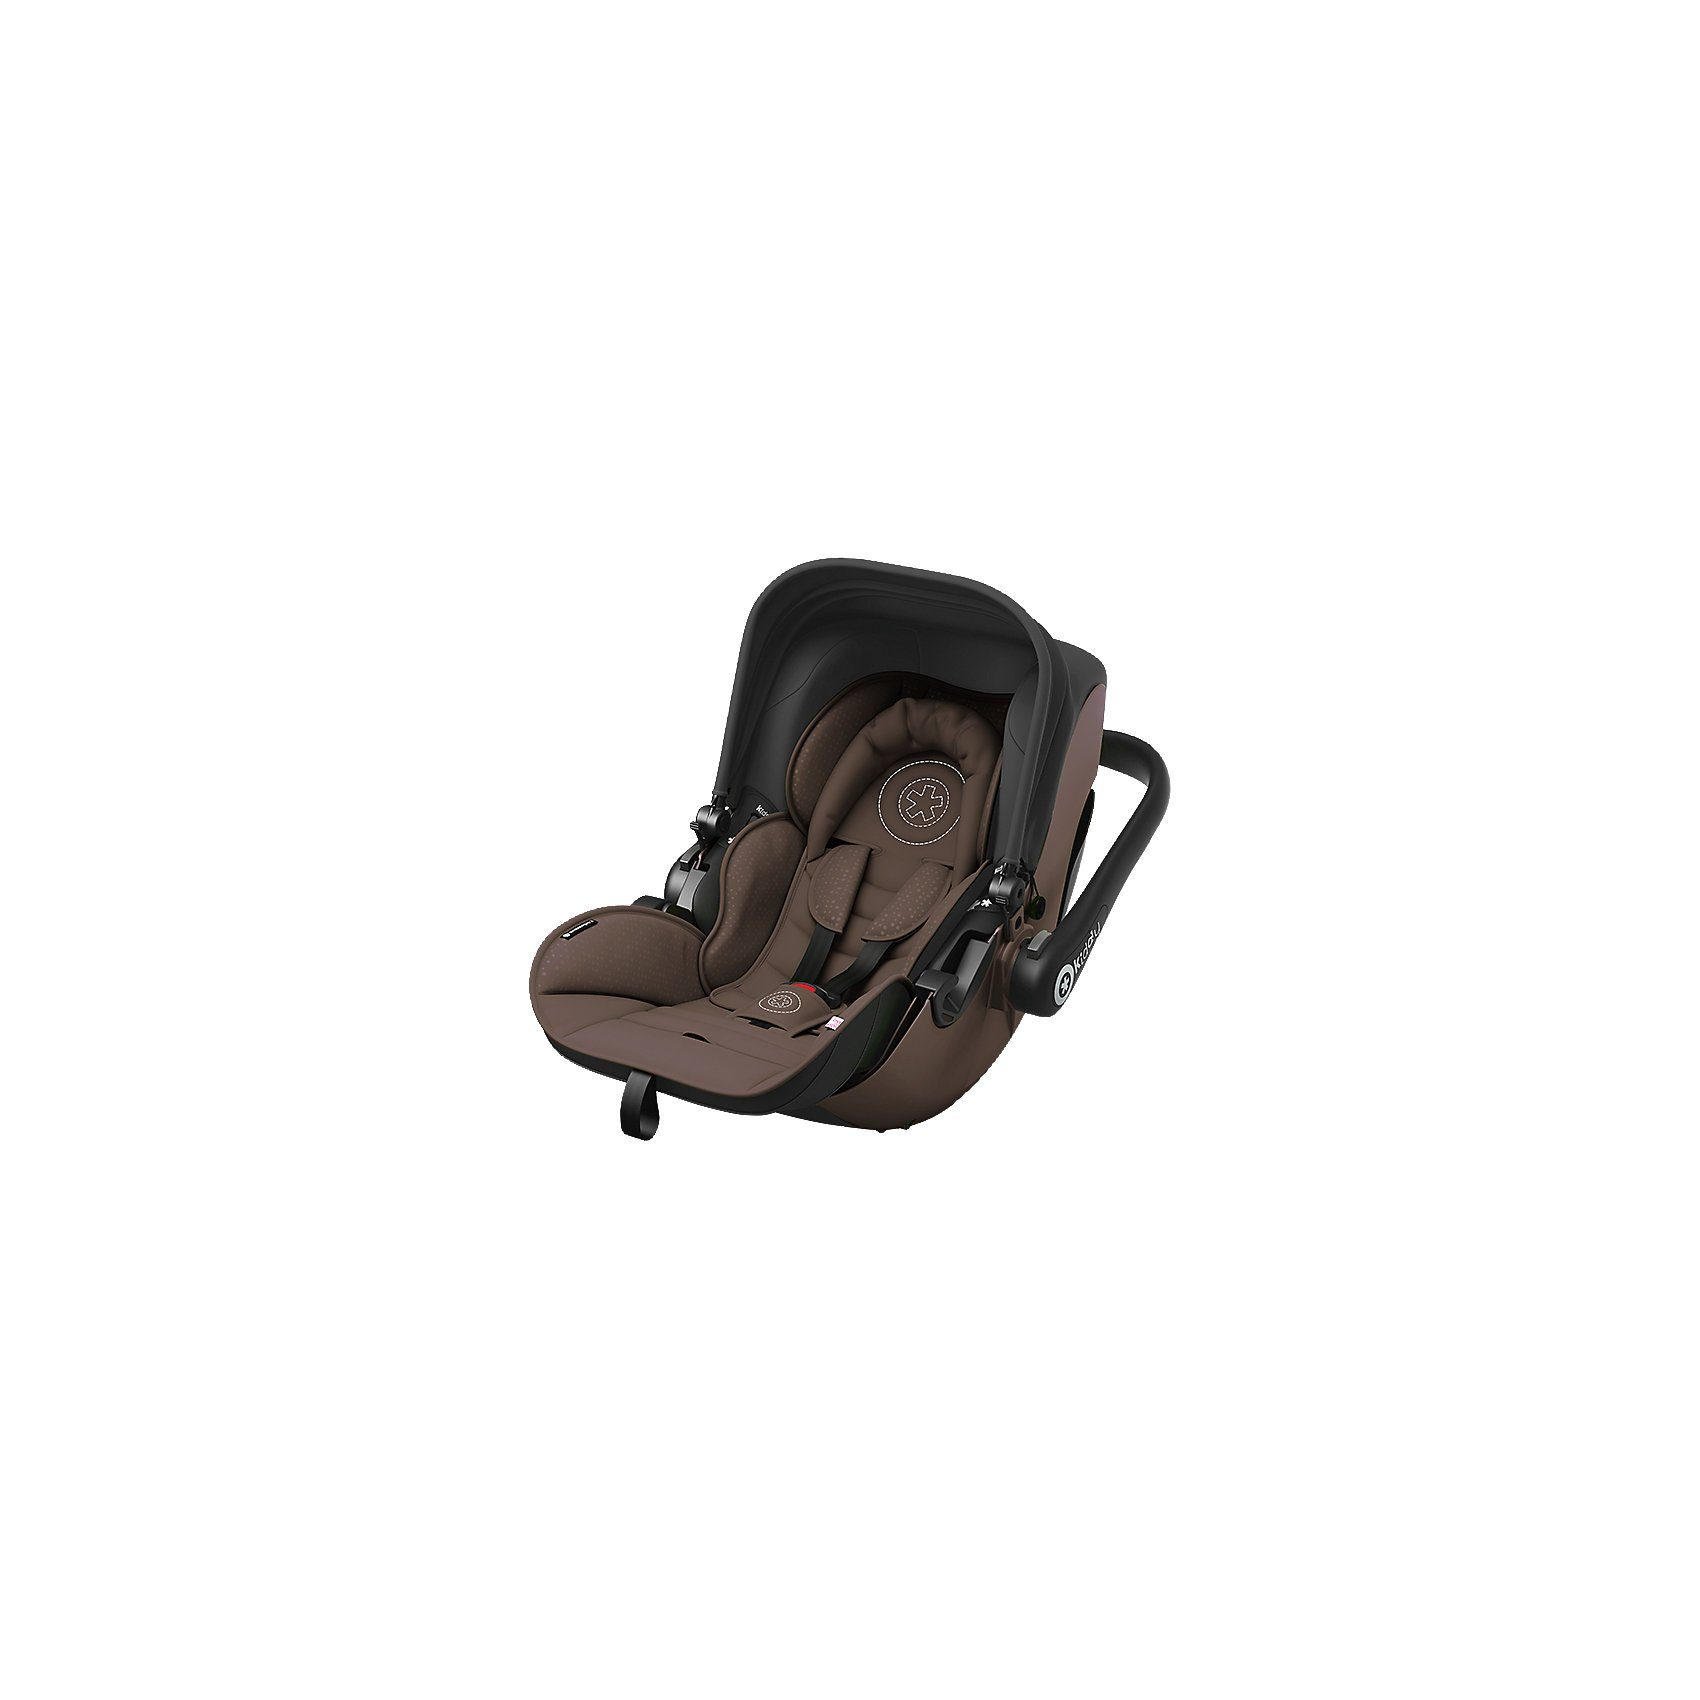 kiddy Babyschale Evolution Pro 2, nougat brown, 2018